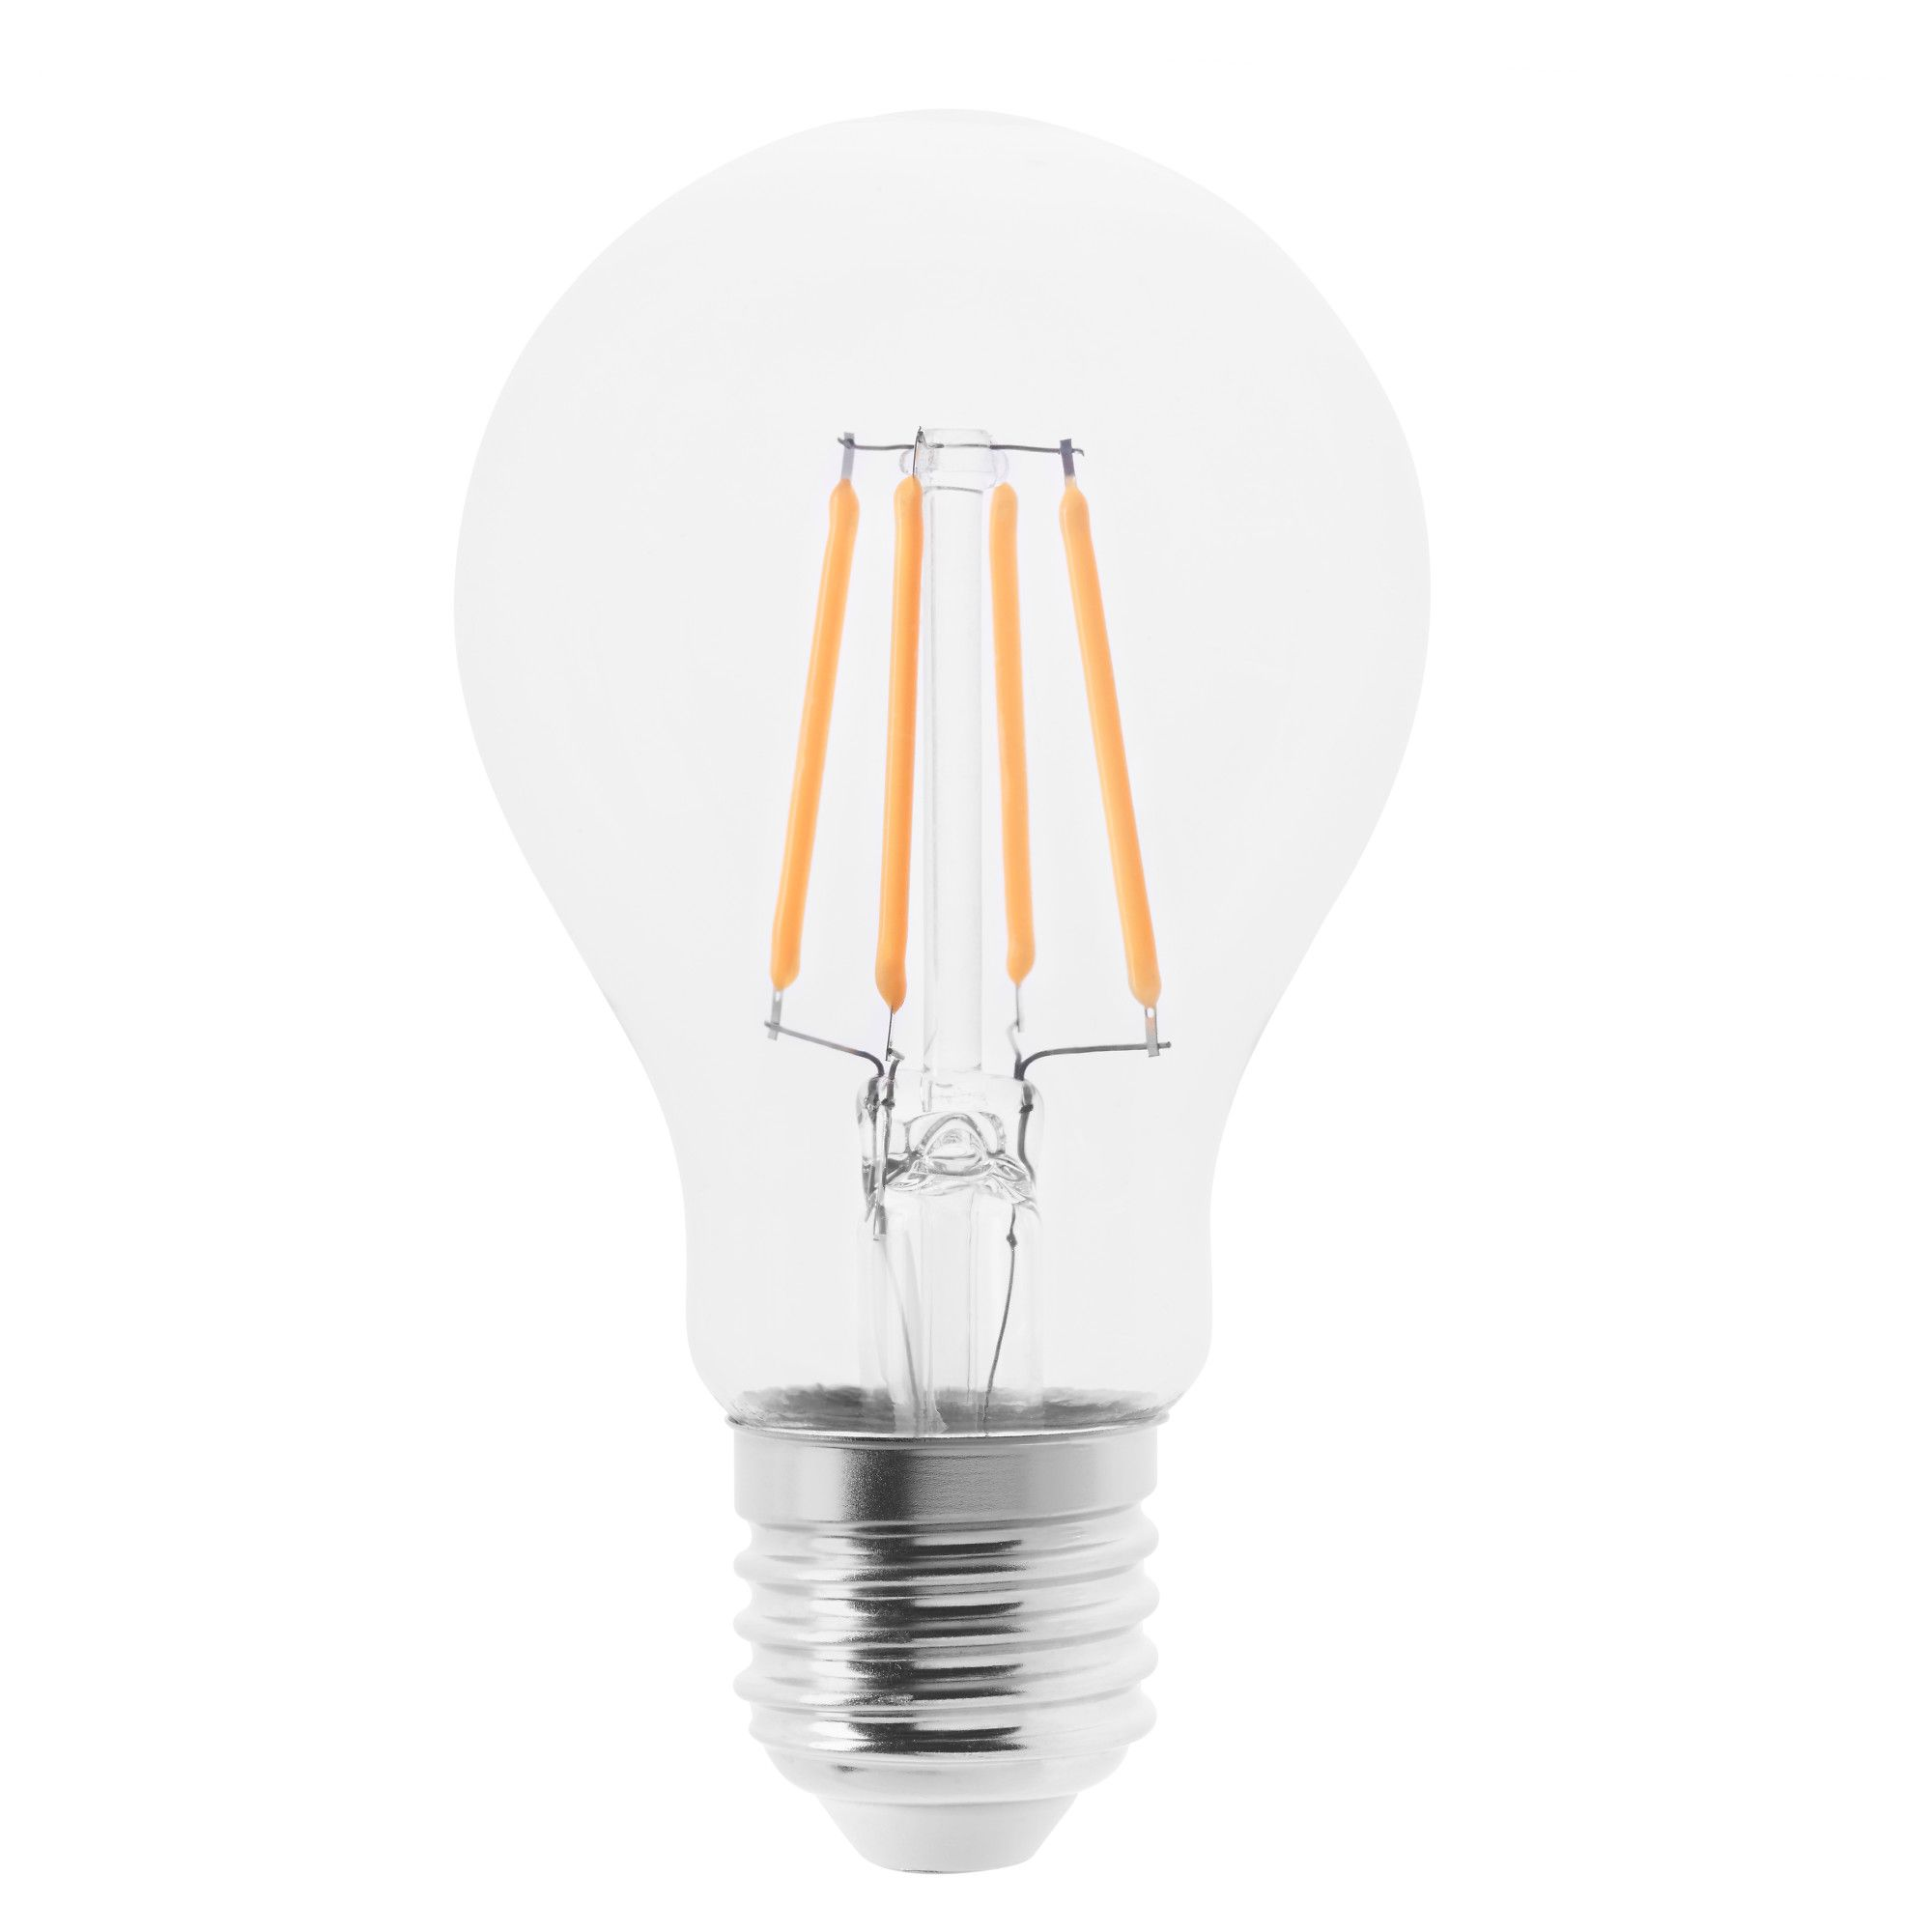 Lampadine led a elegant lampade led design e risparmio energetico with lampadine led a good - Lampadine a led ikea ...